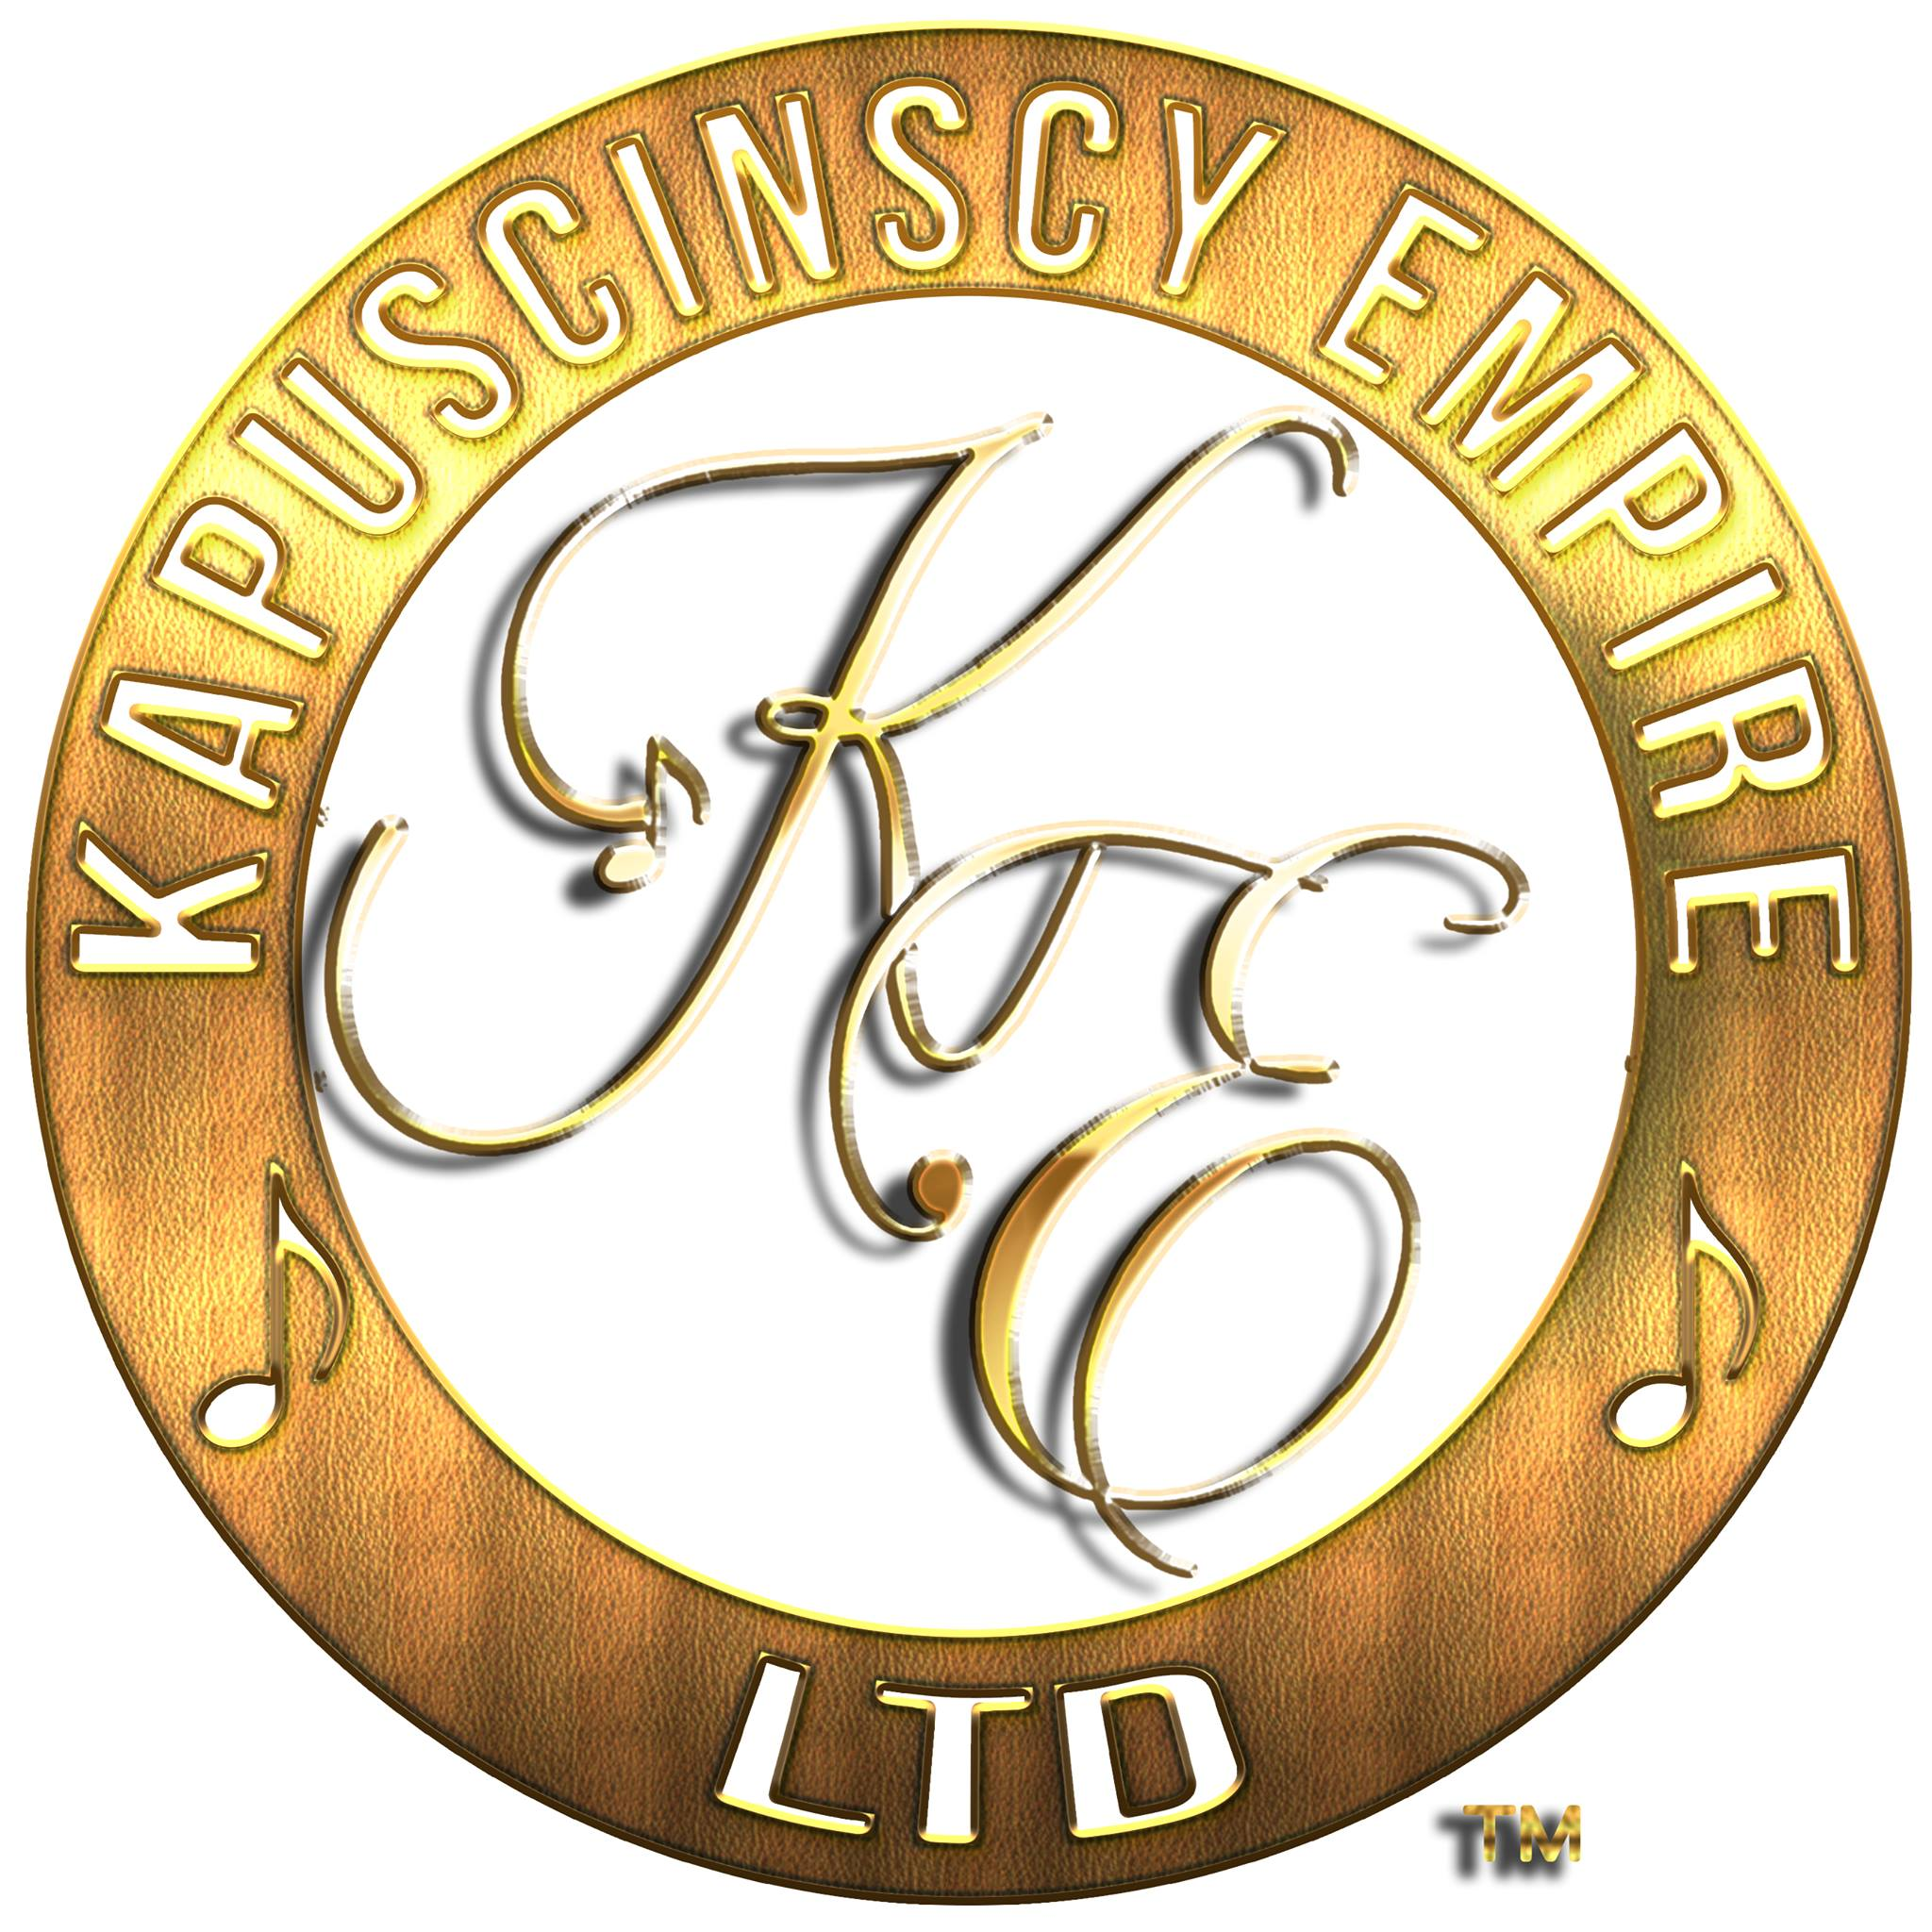 KAPUSCINSCY EMPIRE LTD The Label Which Puts The Artist First